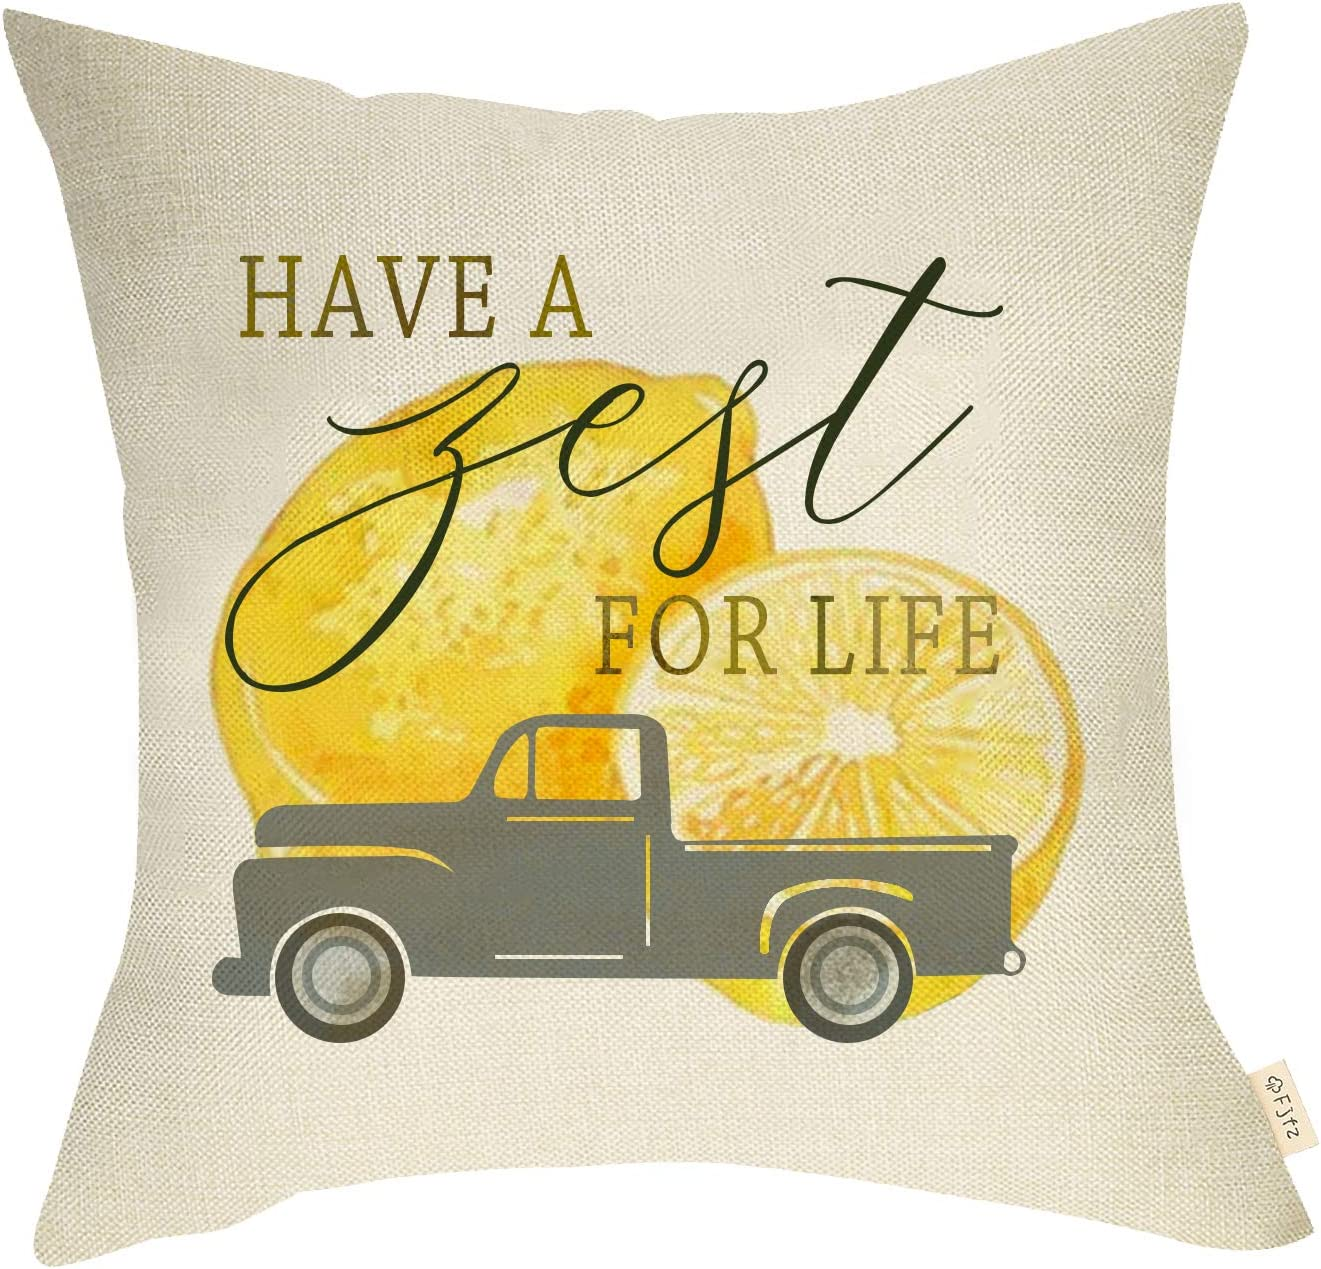 Fjfz Summer Farmhouse Decorative Throw Pillow Cover Have a Zest for Life with Lemon Vintage Truck Sign Decoration Home Décor Cotton Linen Cushion Case for Sofa Couch, 18